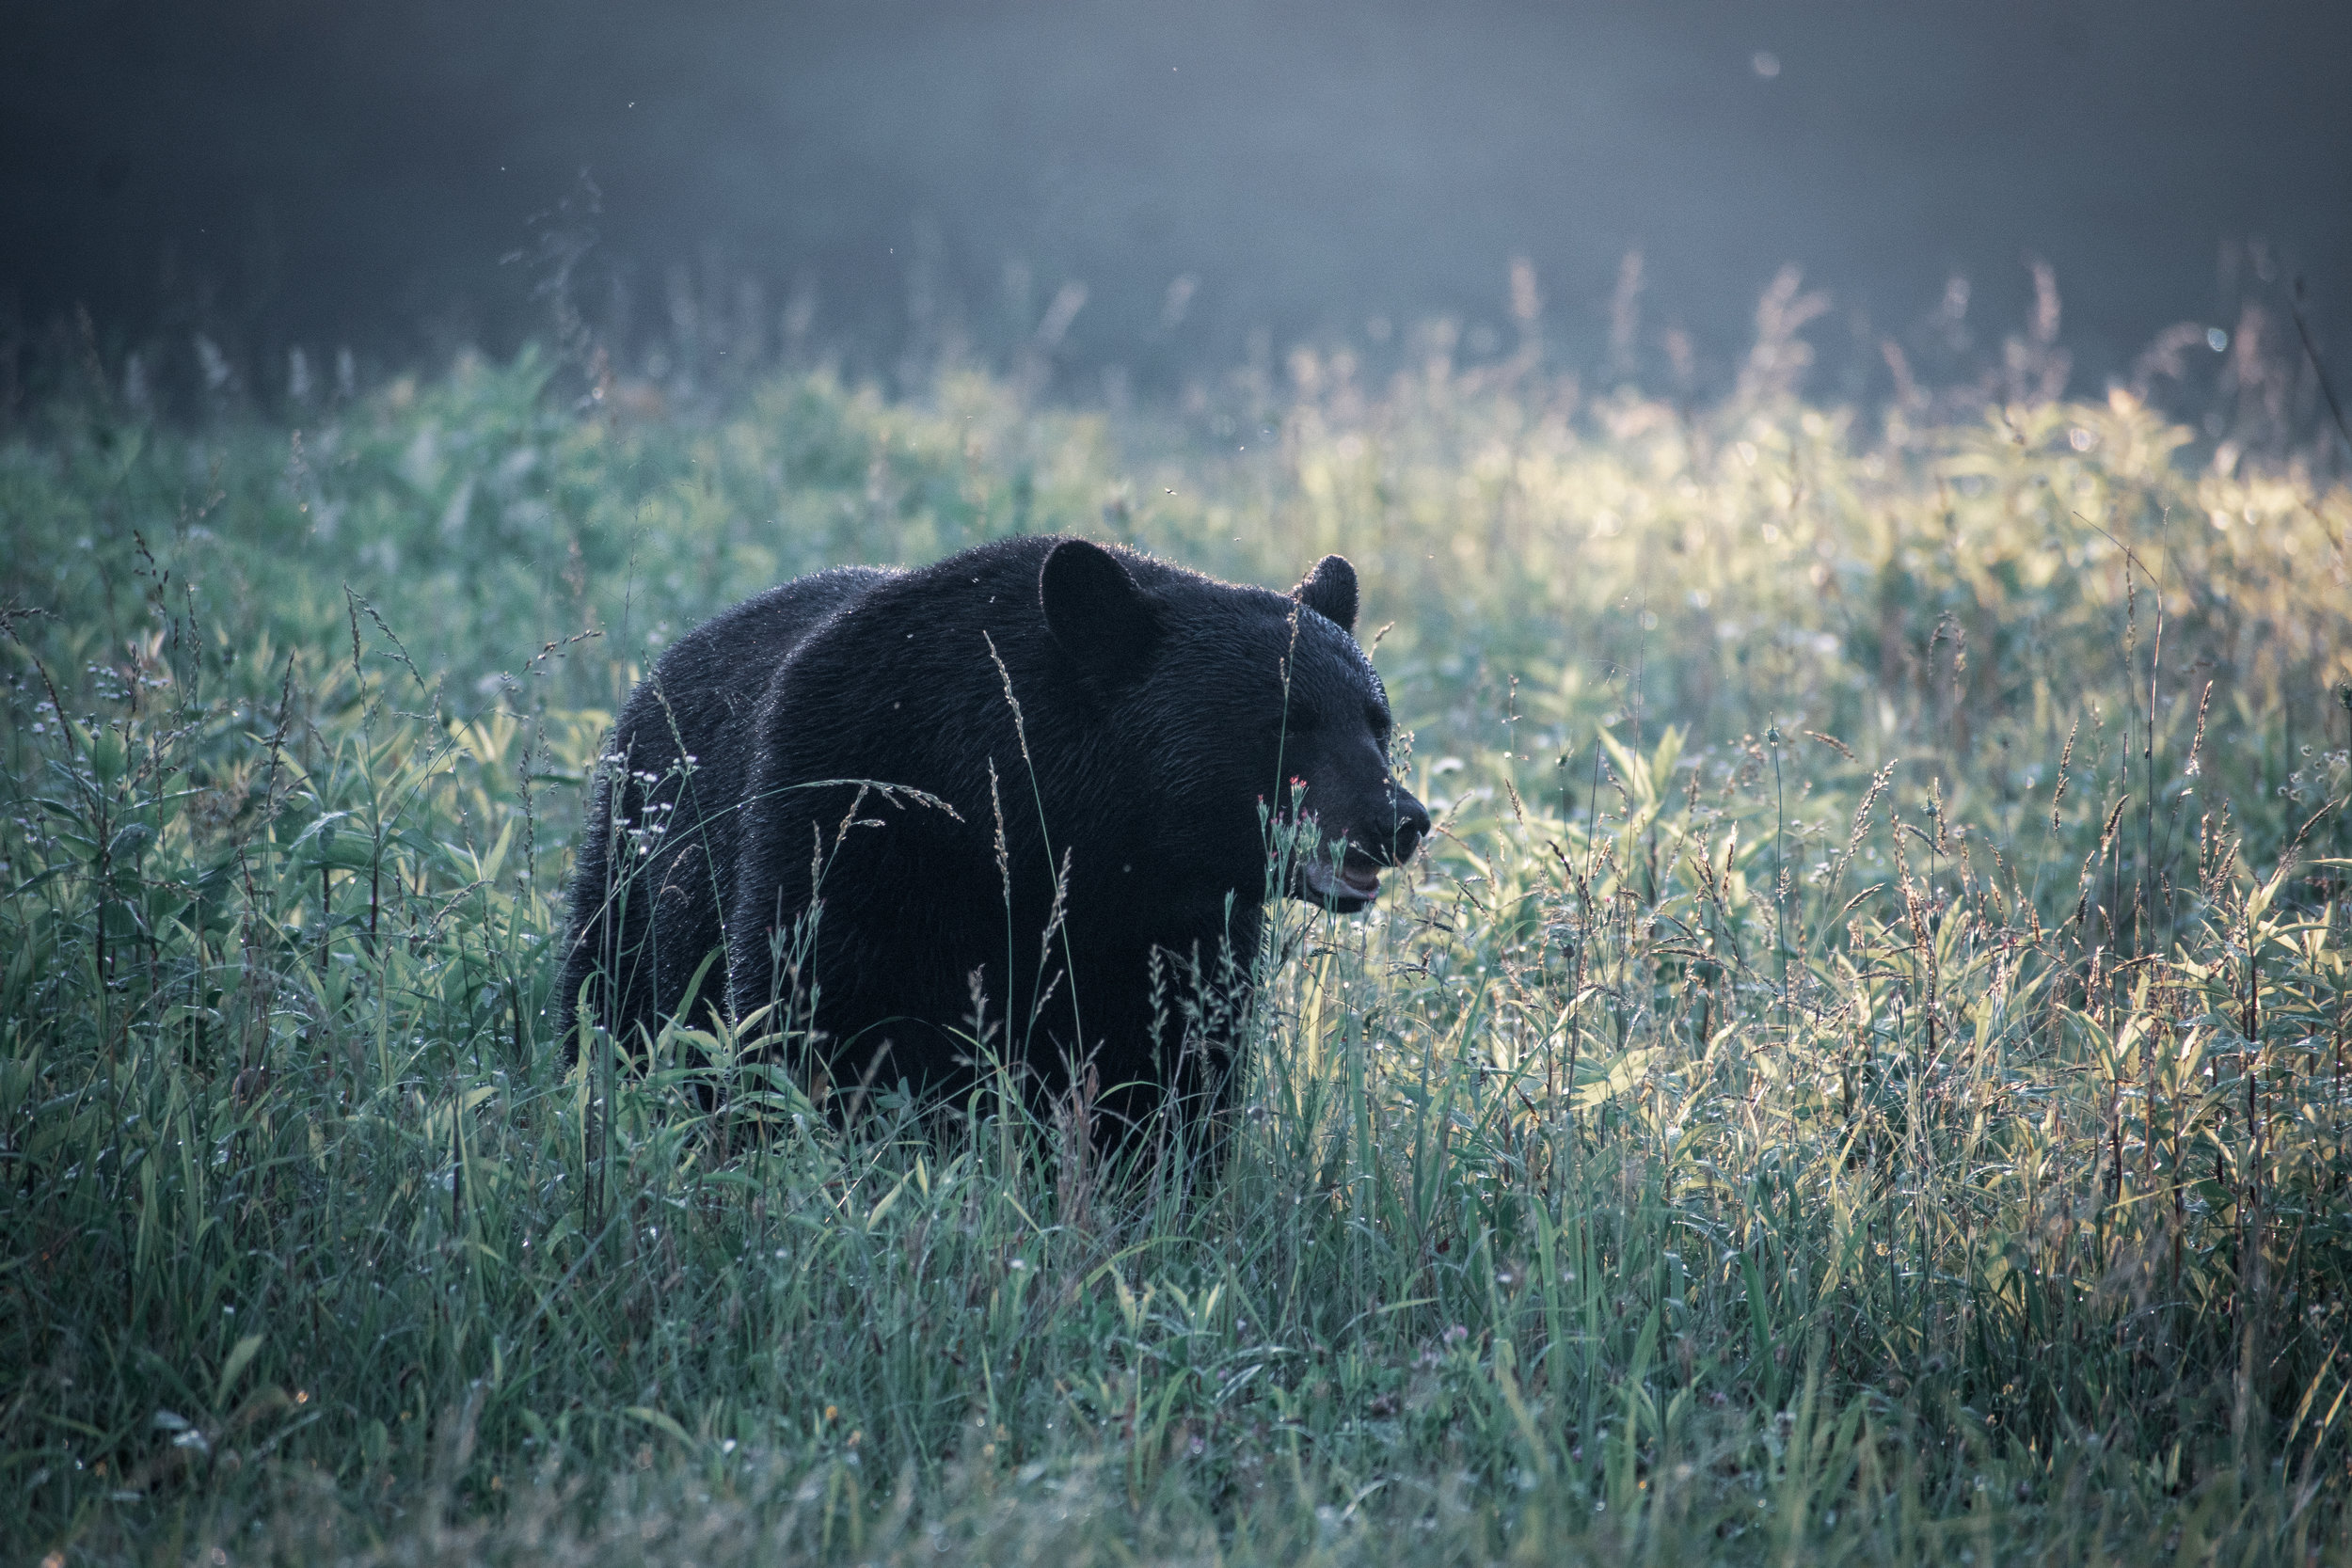 This was an unintentional encounter. While trying to photograph the light in this meadow, this bear suddenly appeared out of the tall grass. It's so important to continue scanning your surroundings when you know you're in a predator habitat.